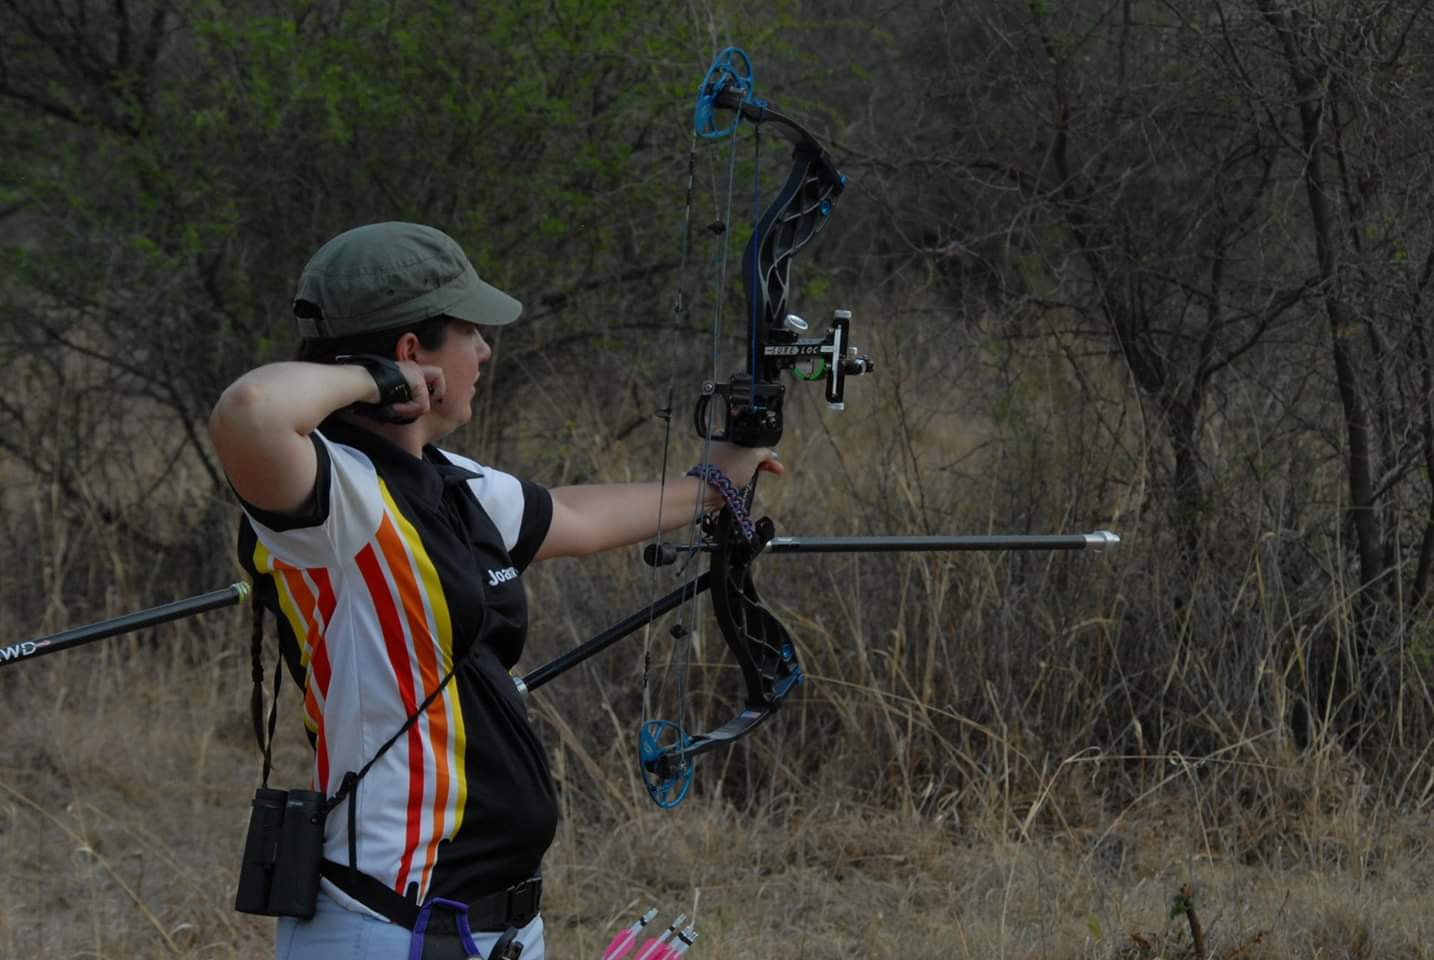 Polygraph examiners aiming for accuracy at the World Archery Championships.